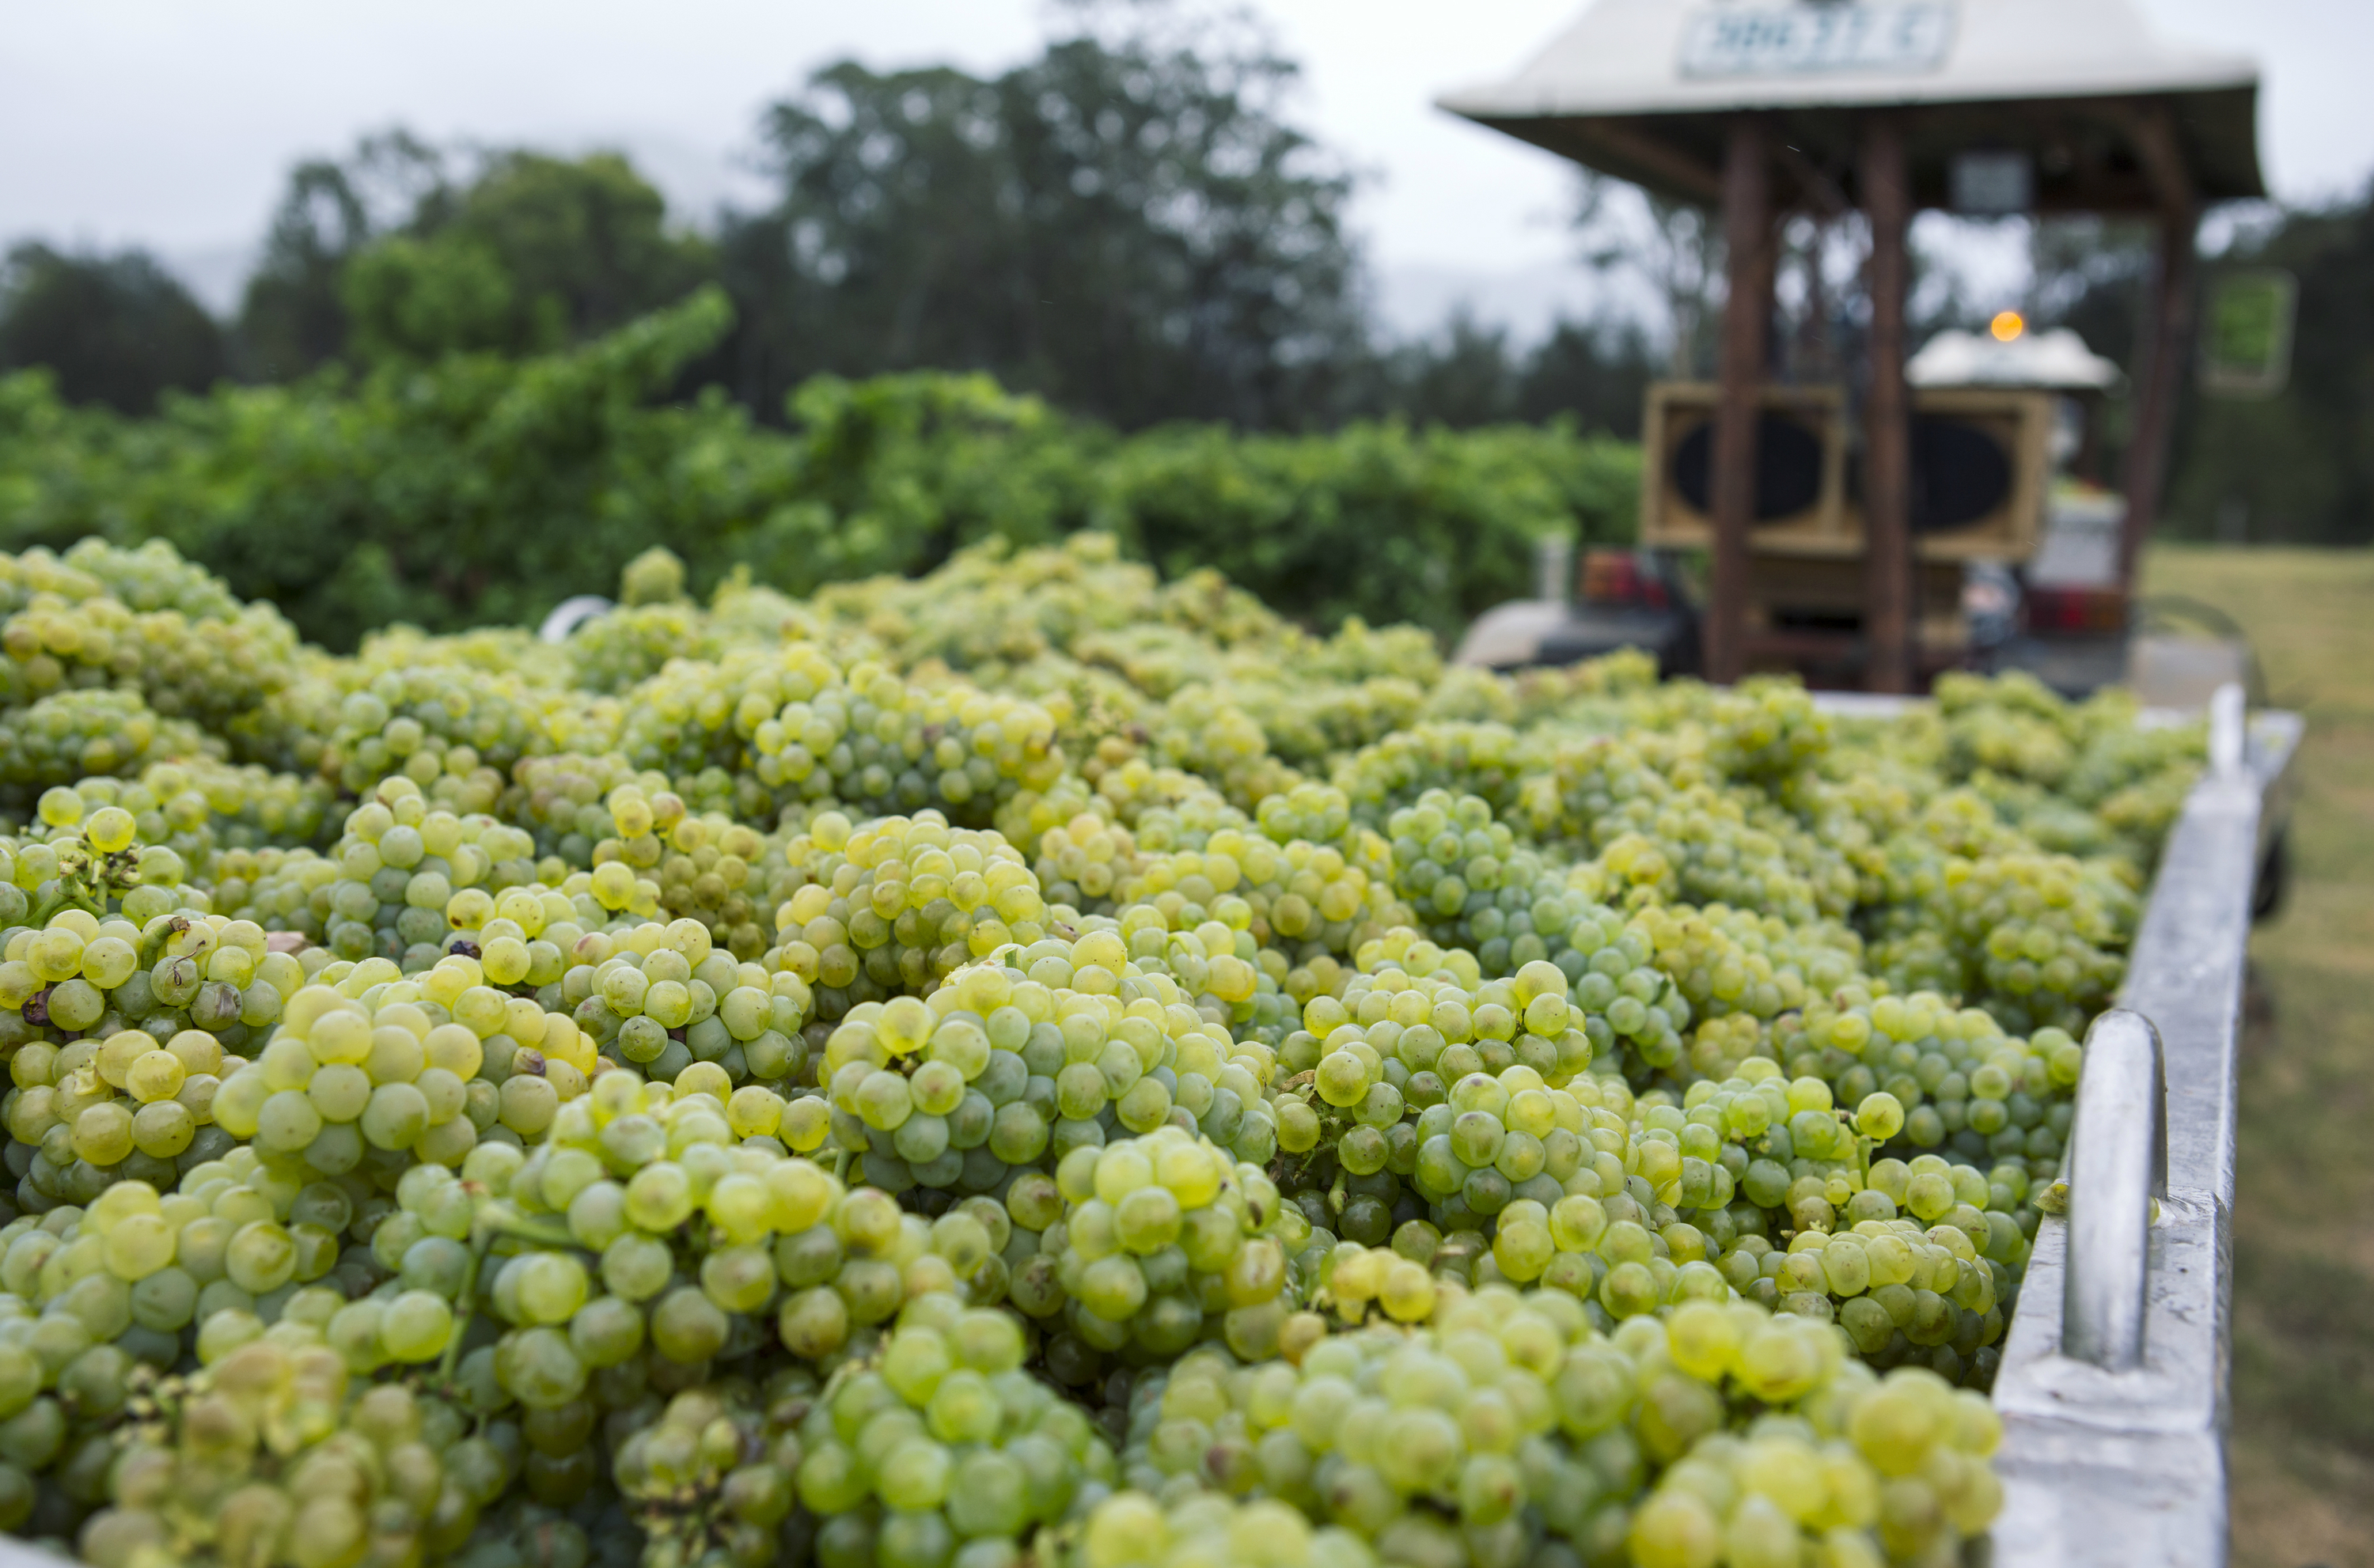 Grapes being harvested.